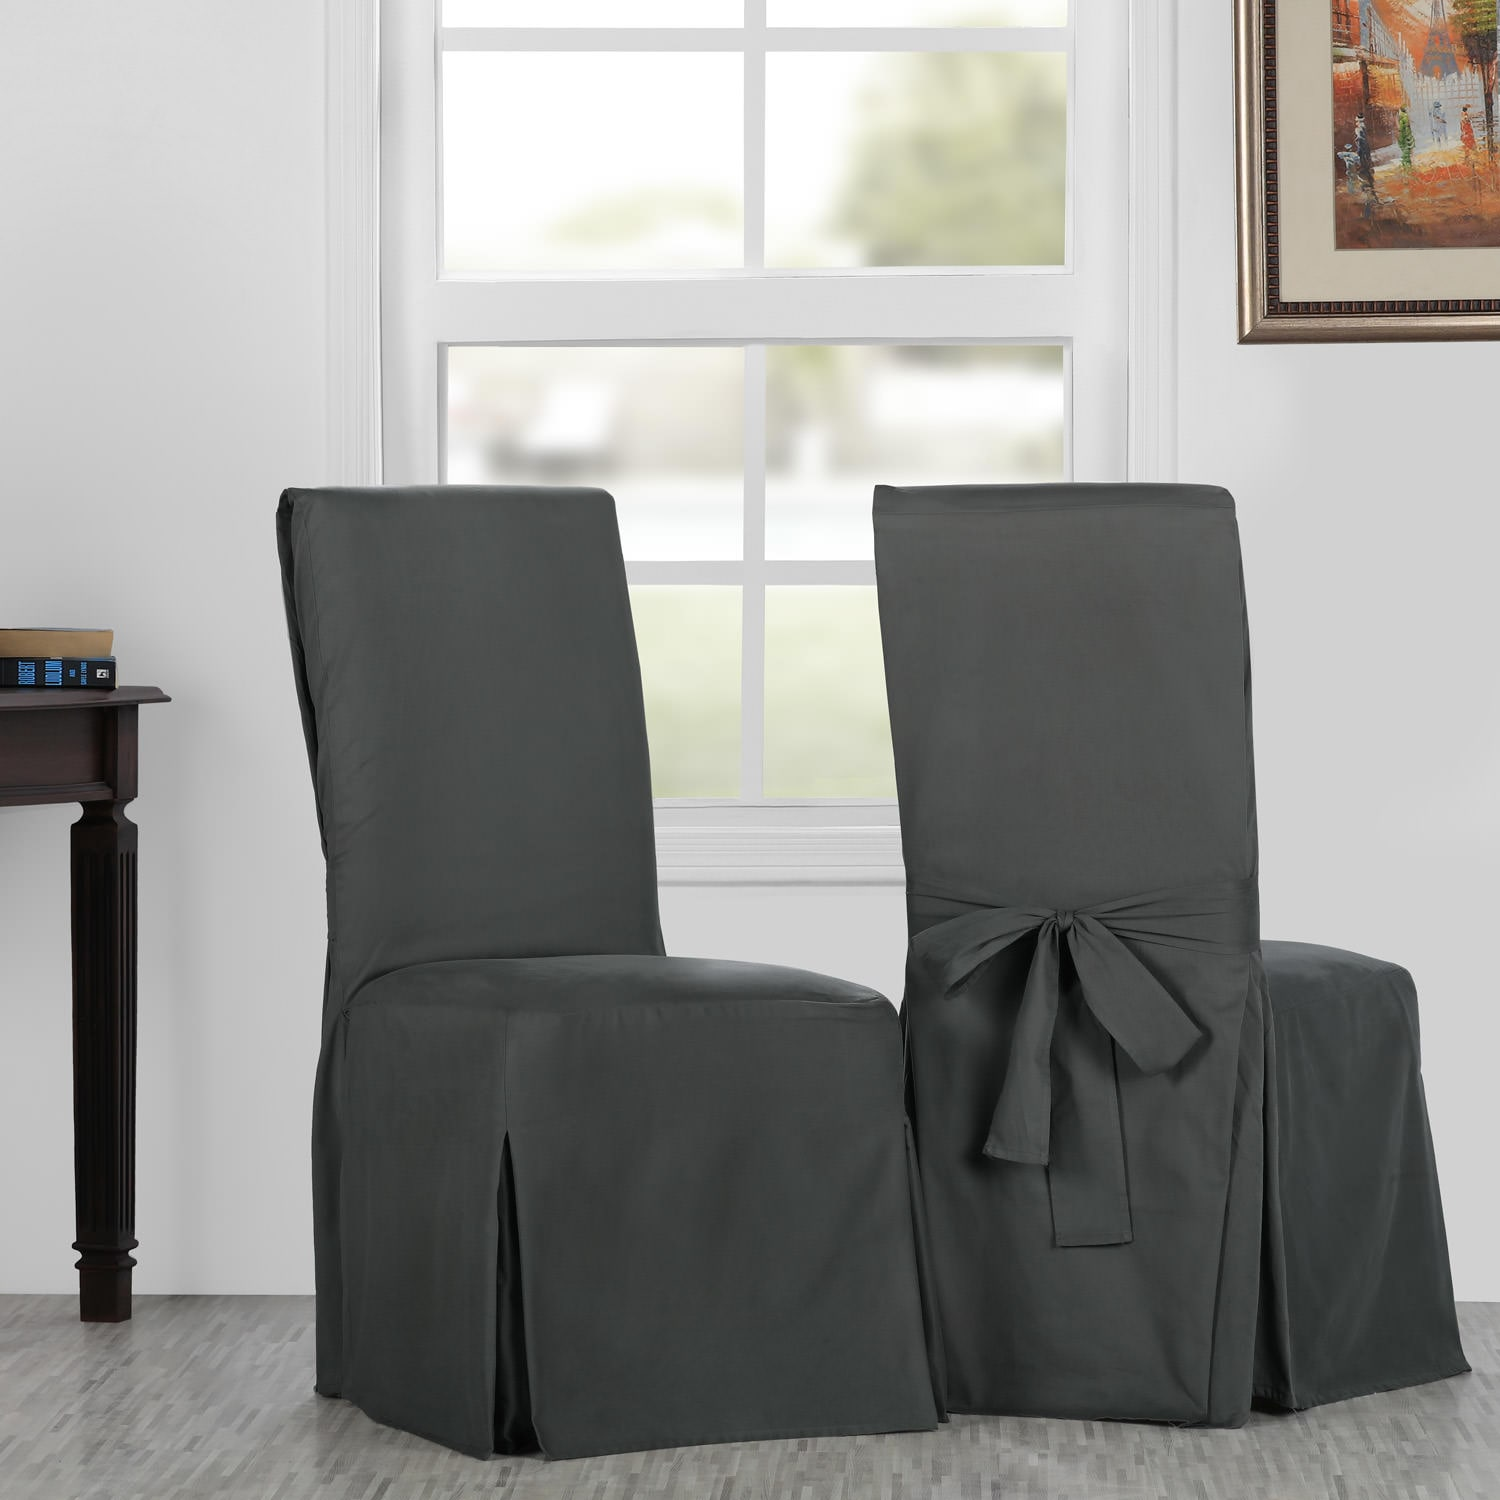 Millstone Gray Solid Cotton Twill Chair Covers